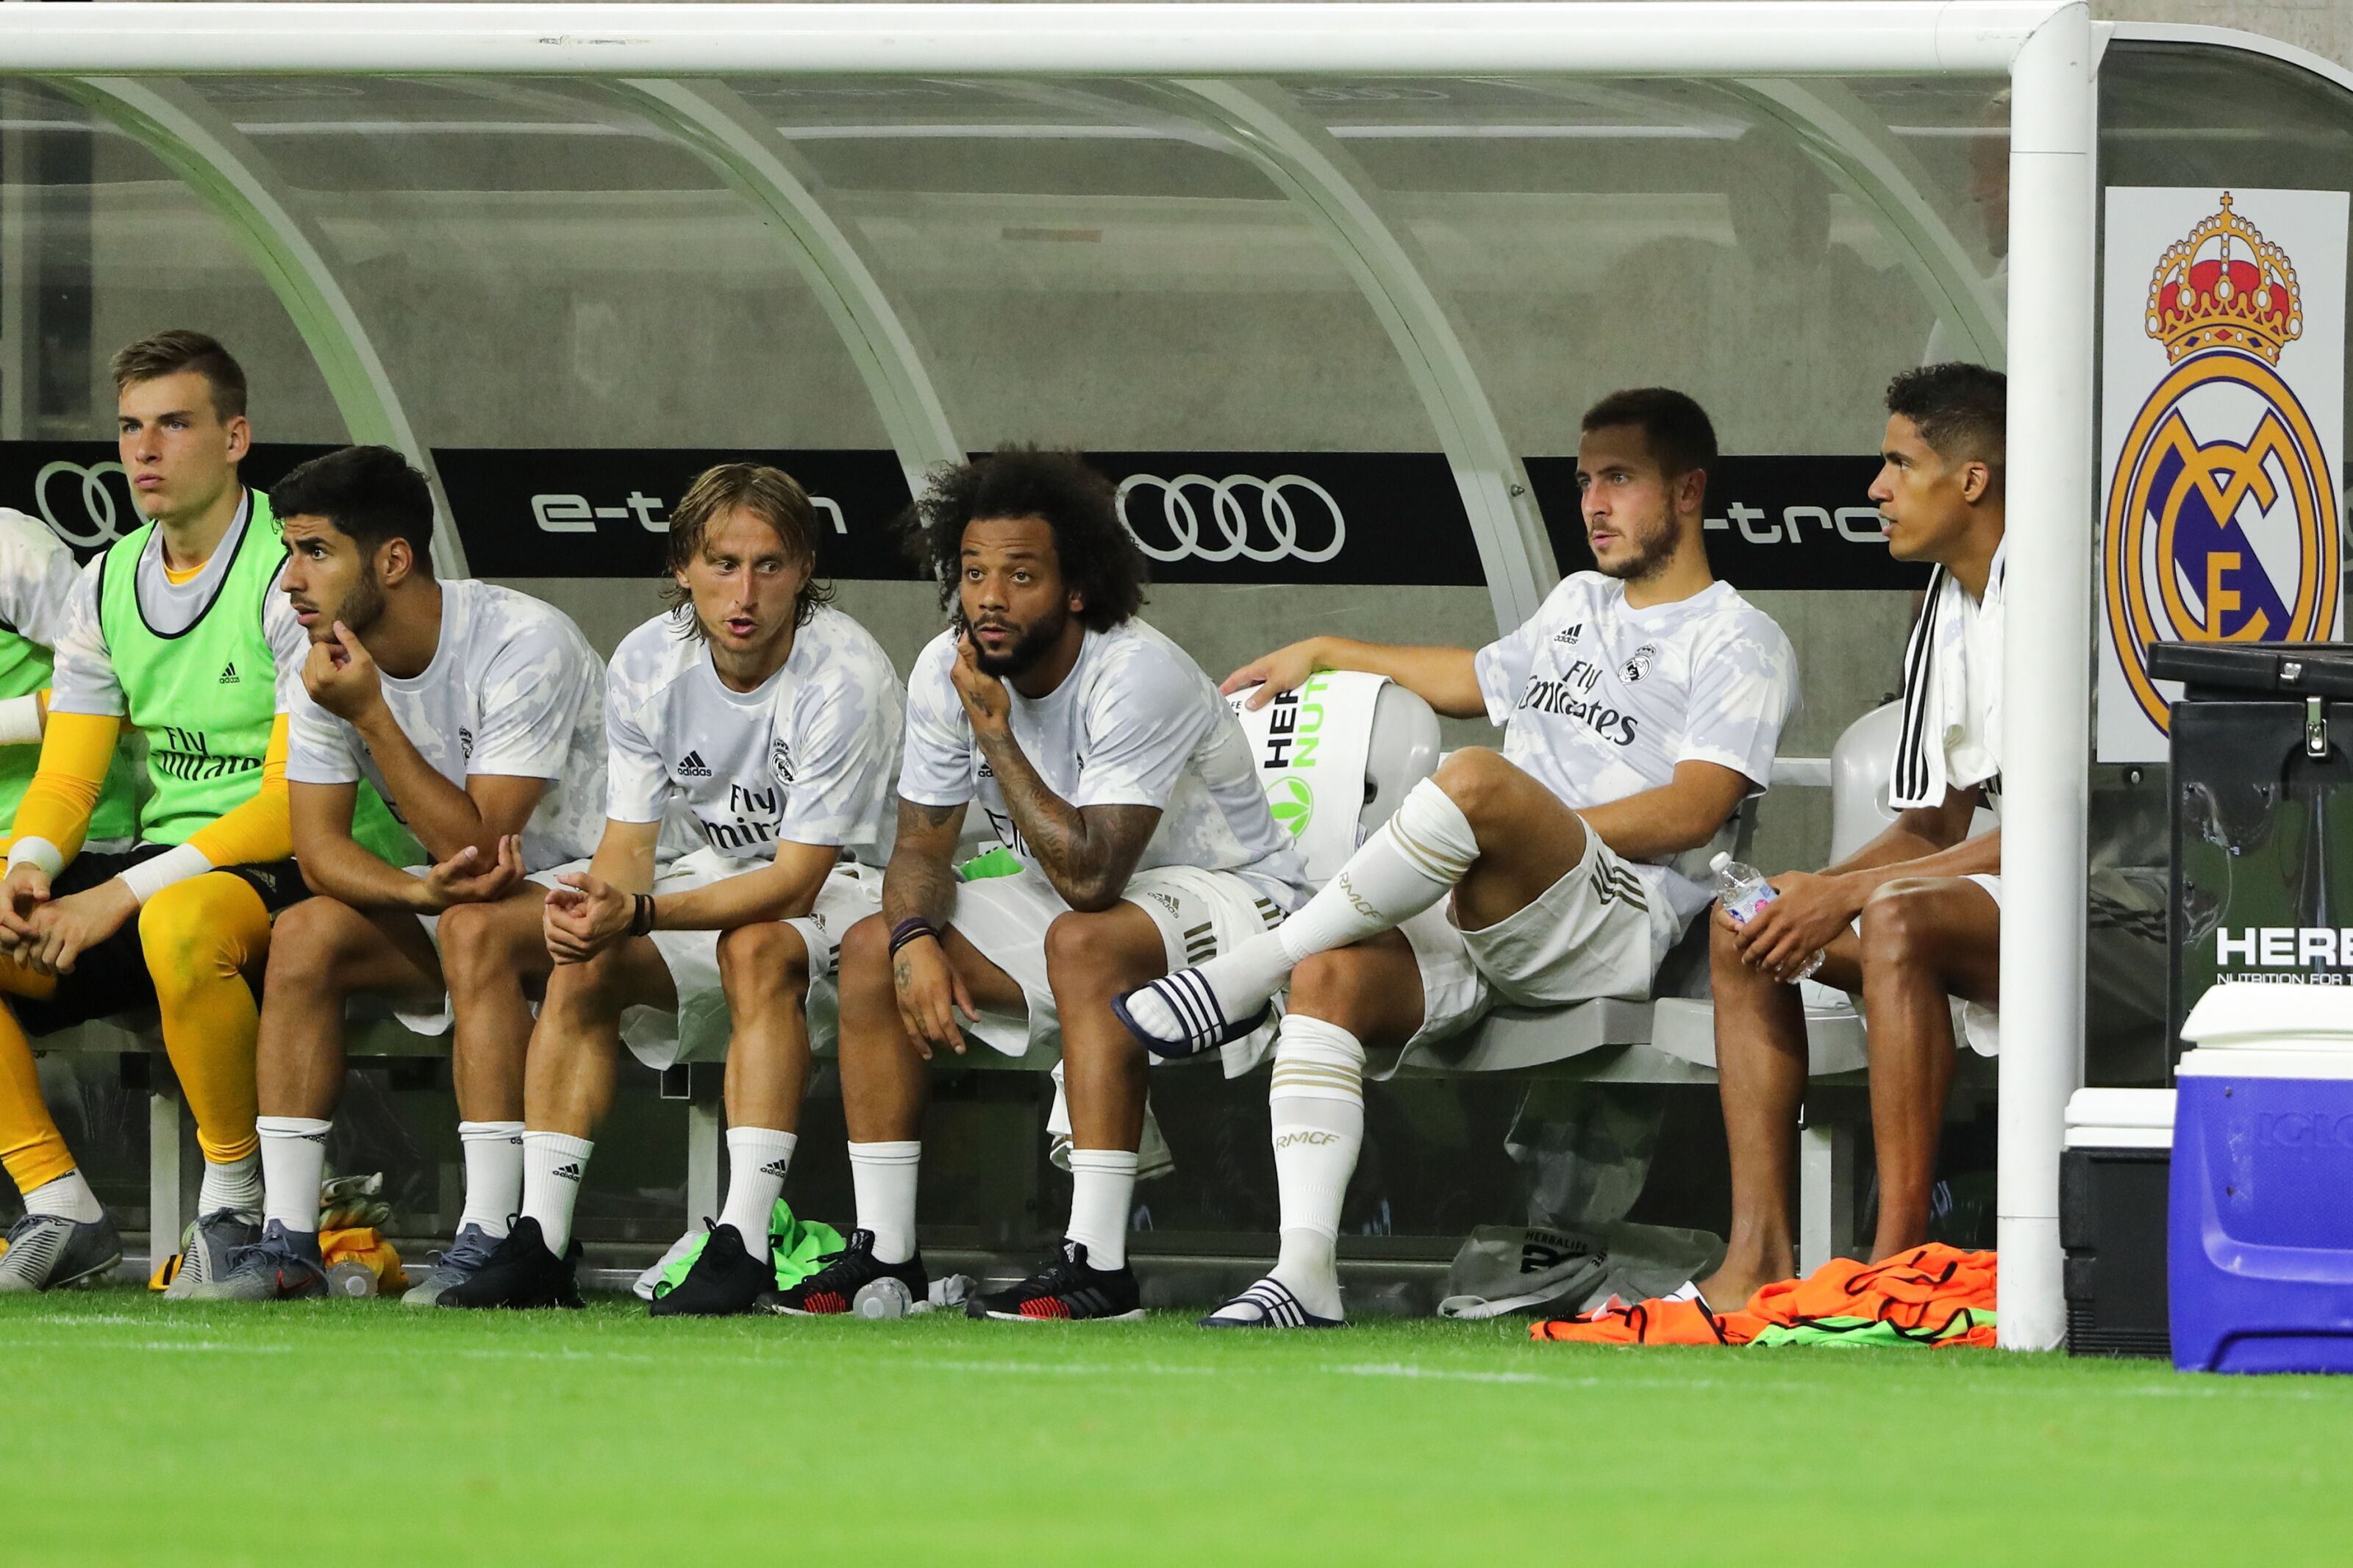 Bayern Munich 3 – Real Madrid 1: Players who impressed and players who struggled in the first preseason match